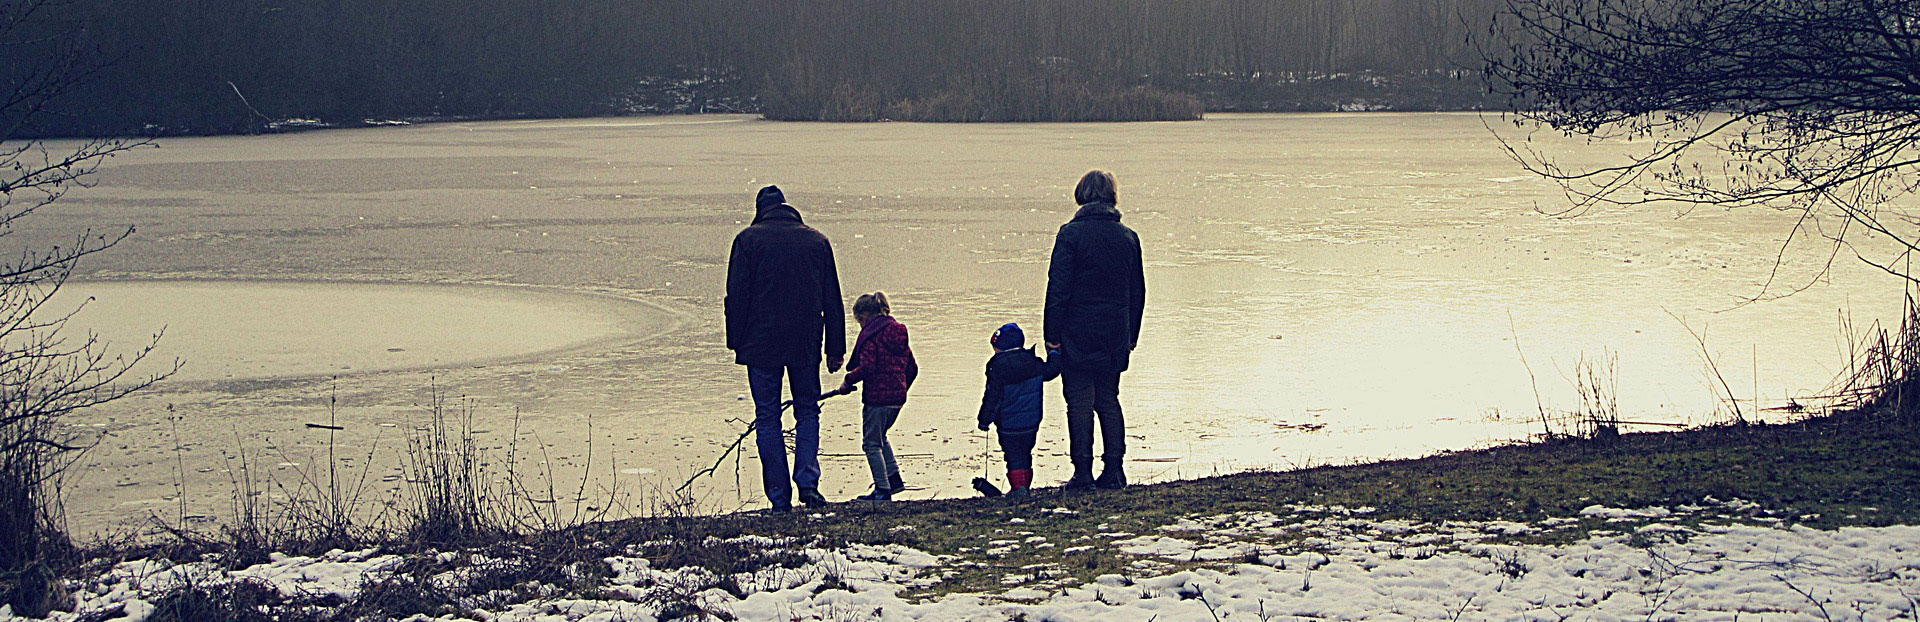 First World Day for Grandparents and the Elderly: Memory and Presence